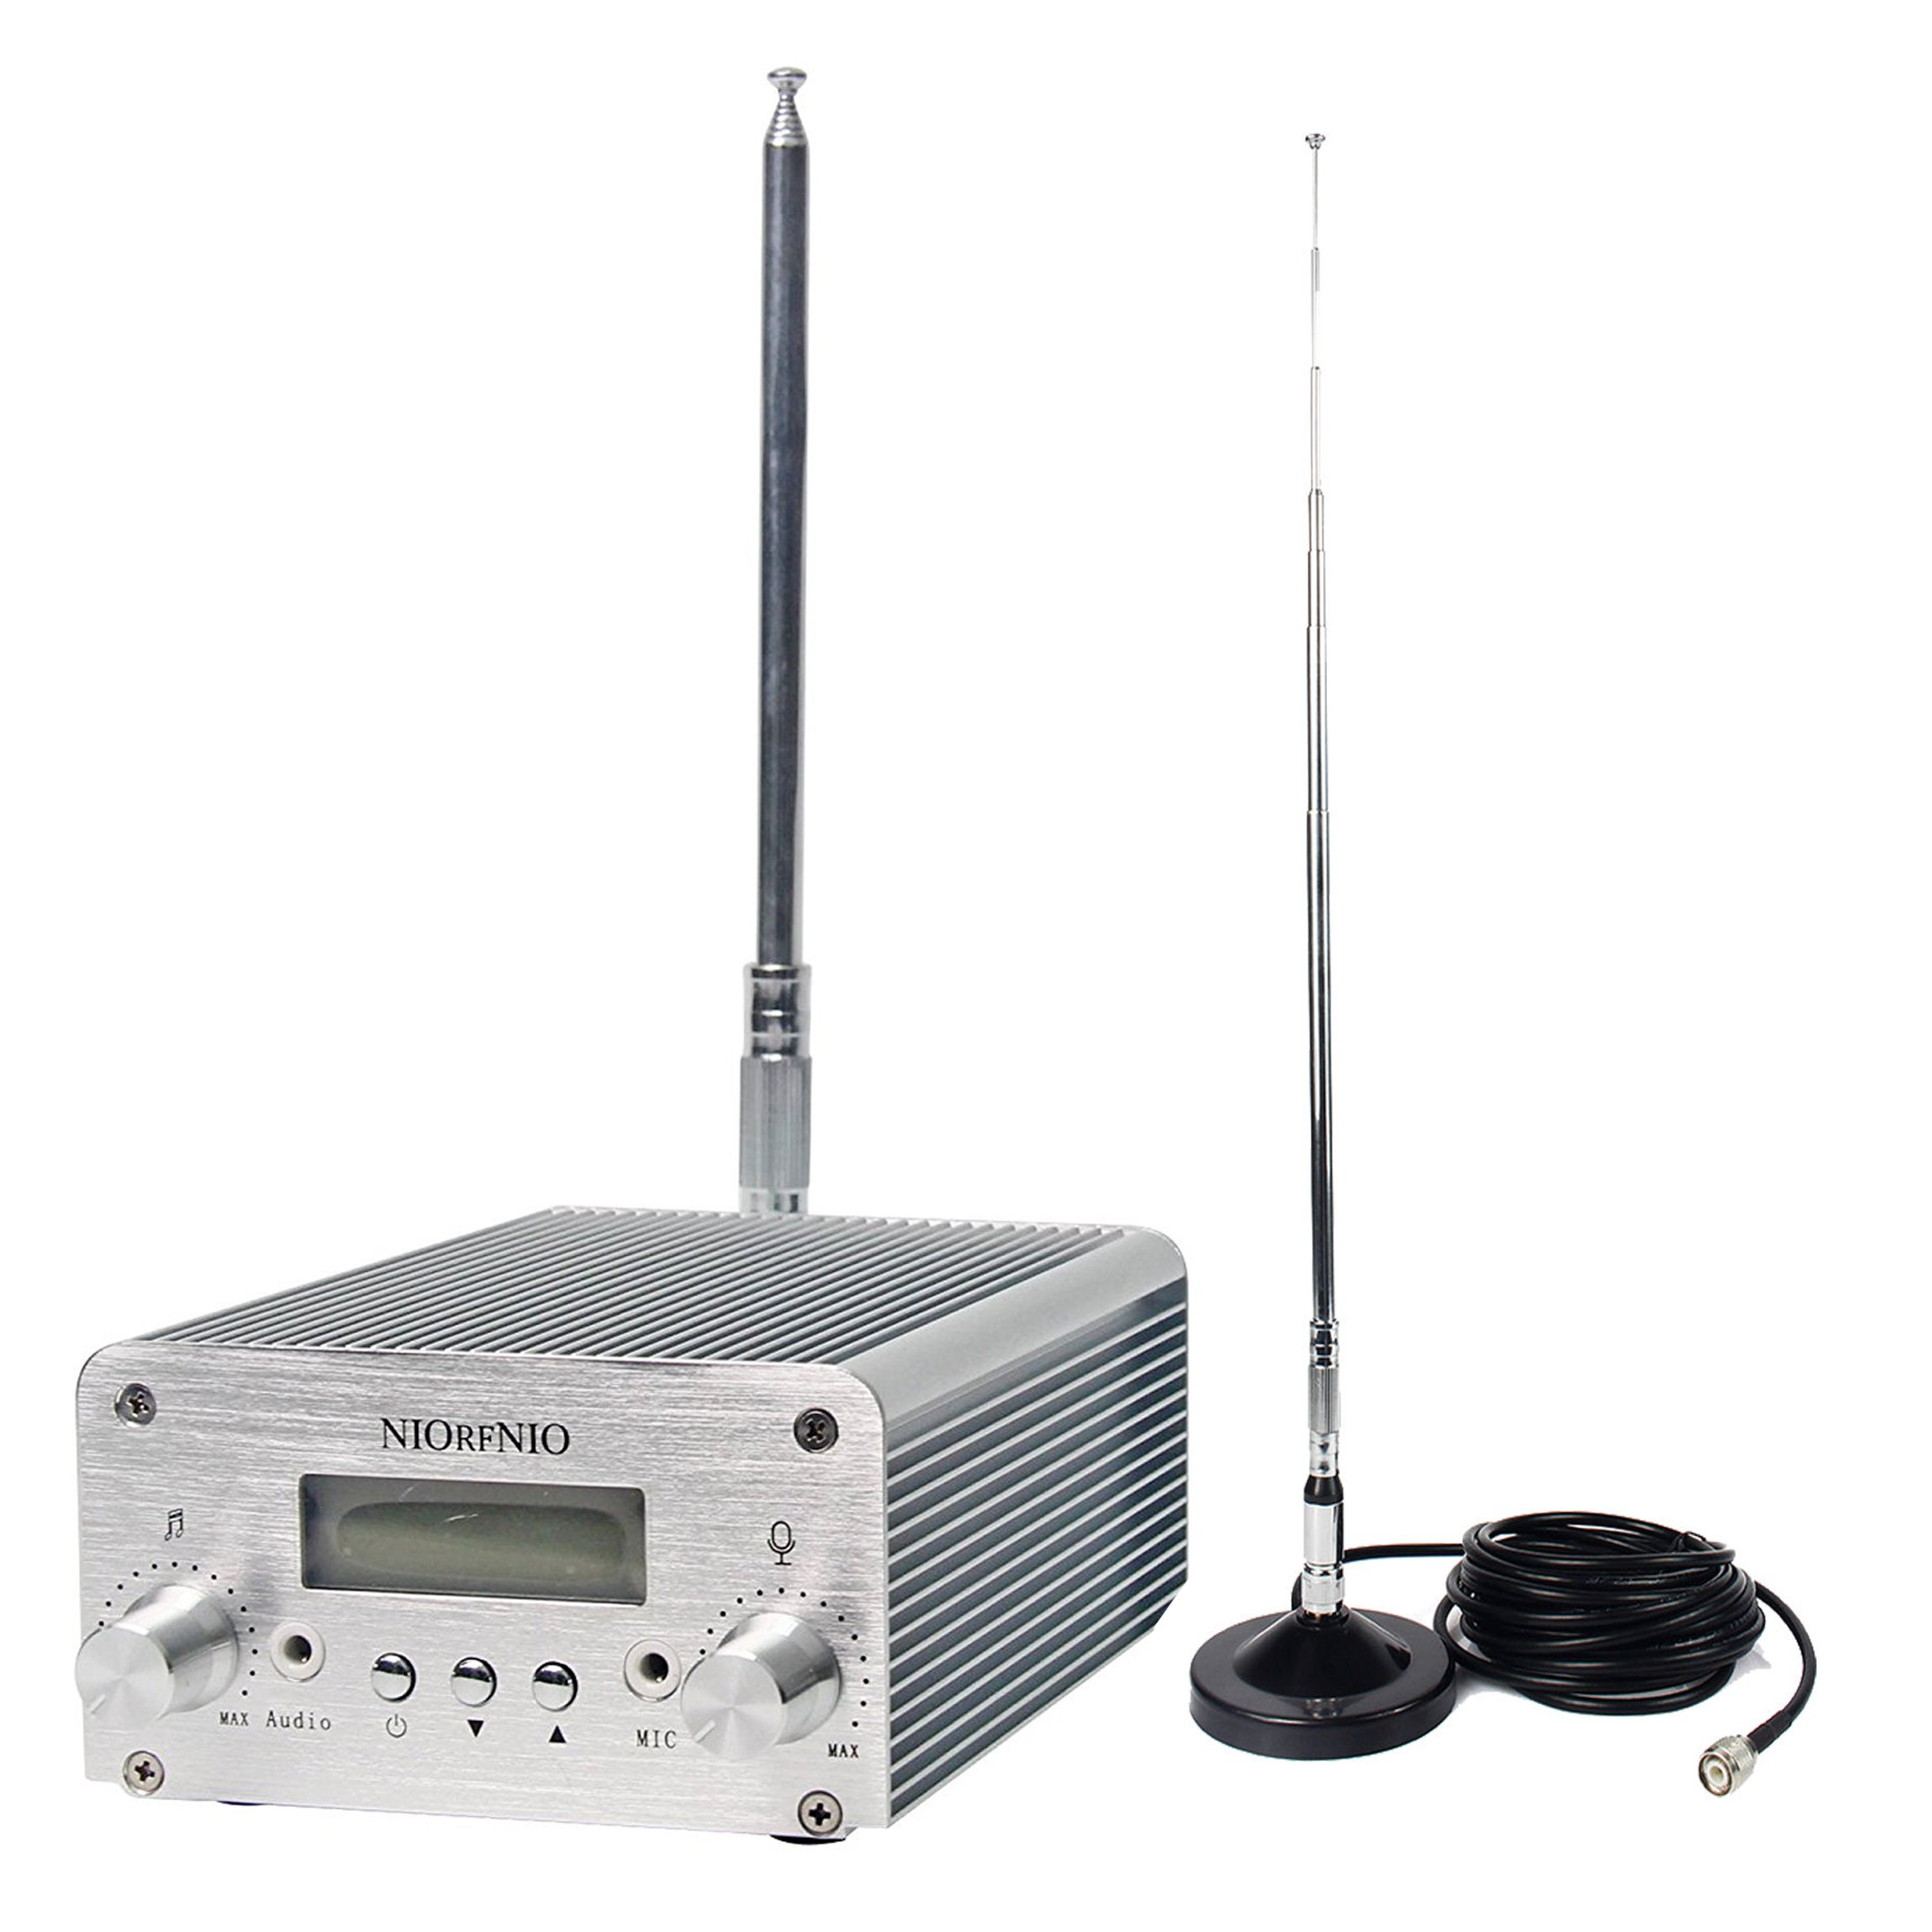 Signstek 15W/5W Dual Mode Long Range Stereo Broadcast Home Wireless FM Transmitter PLL LCD with Antenna by Signstek